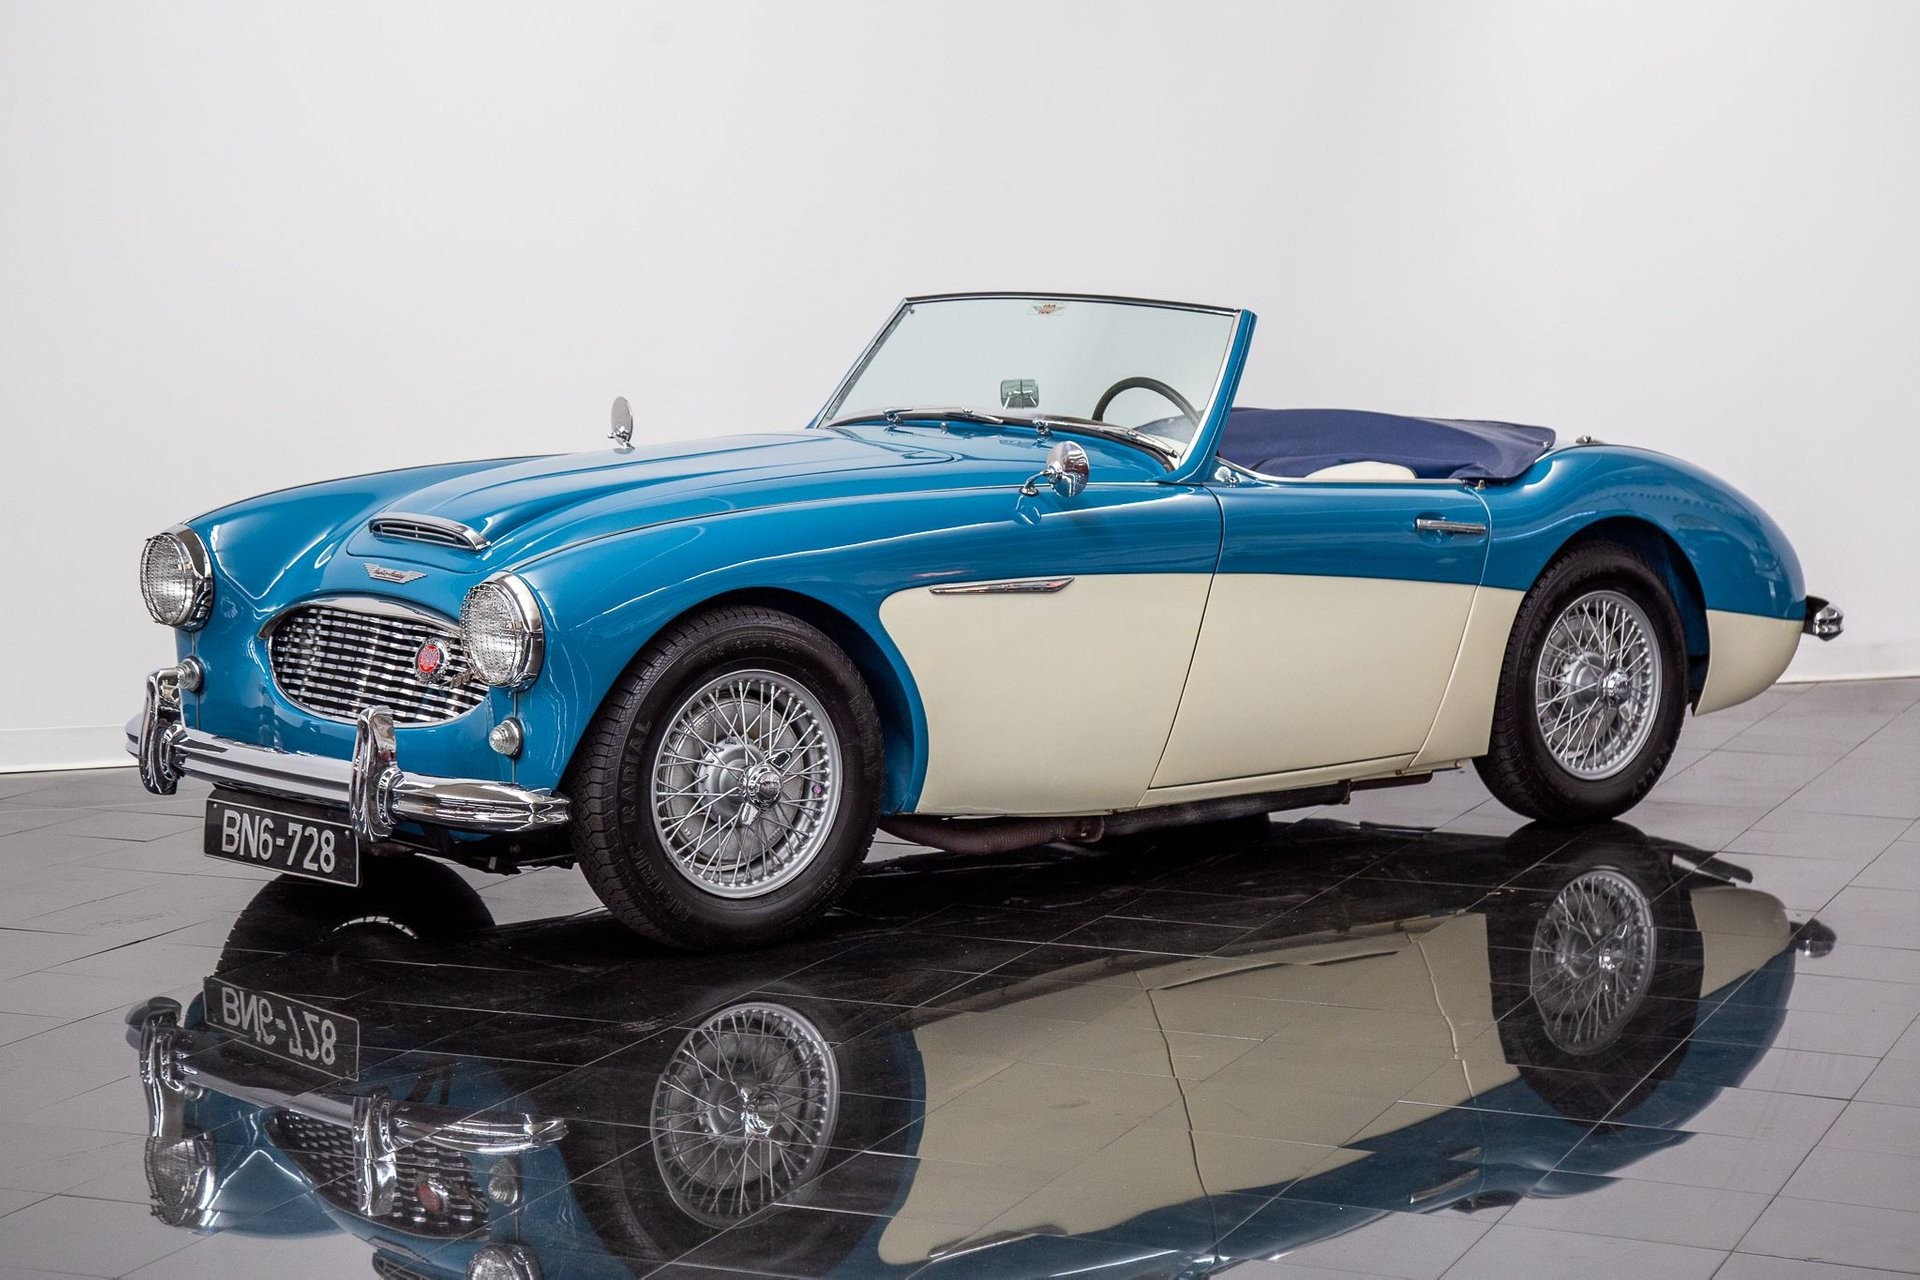 1958 austin healey 100 6 bn6 2 seater roadster